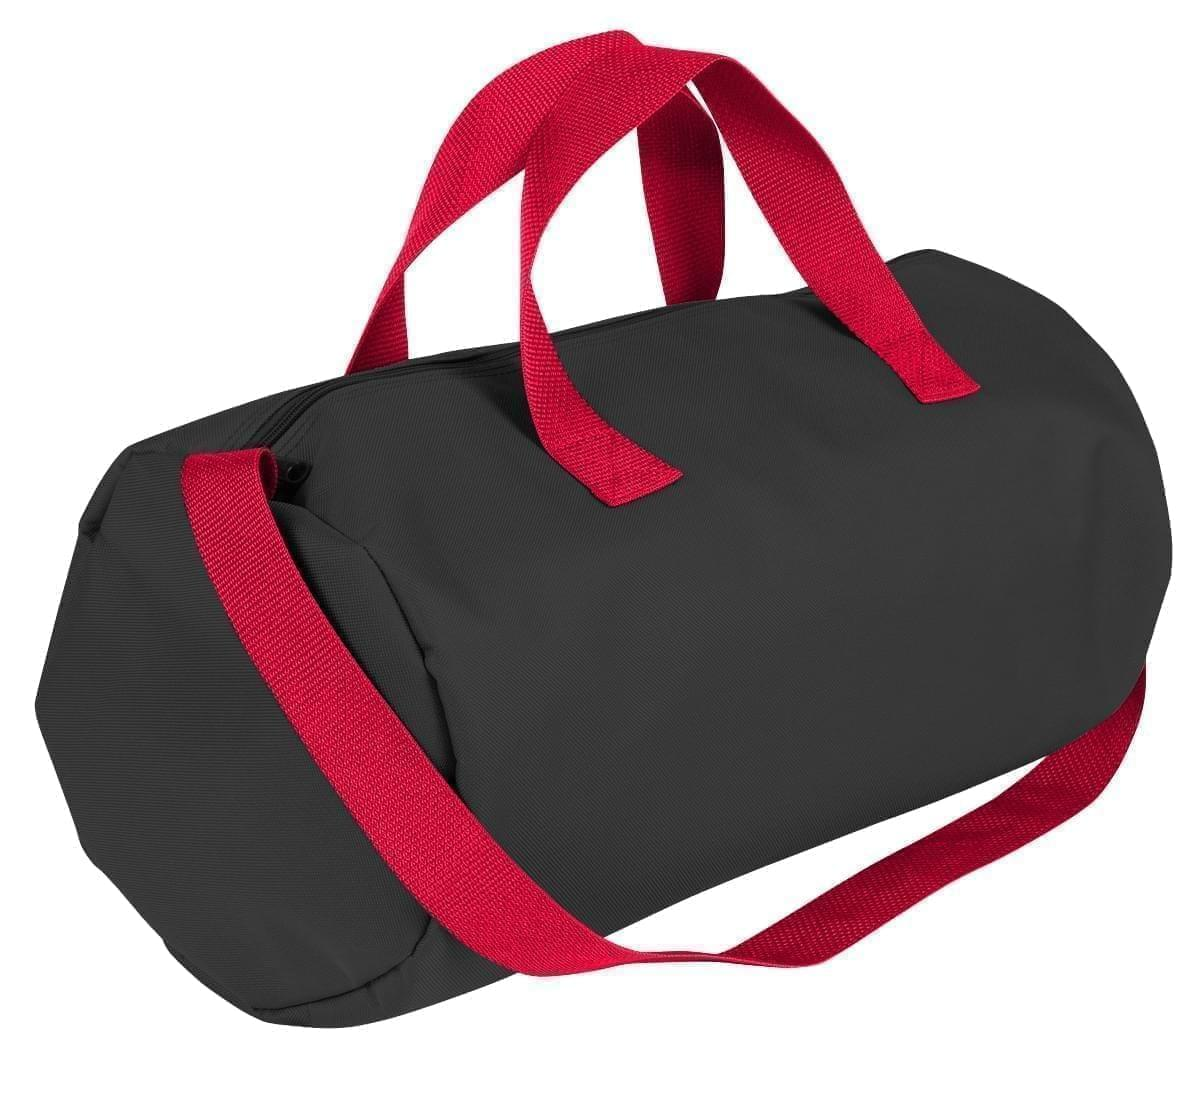 USA Made Nylon Poly Gym Roll Bags, Black-Red, ROCX31AAO2